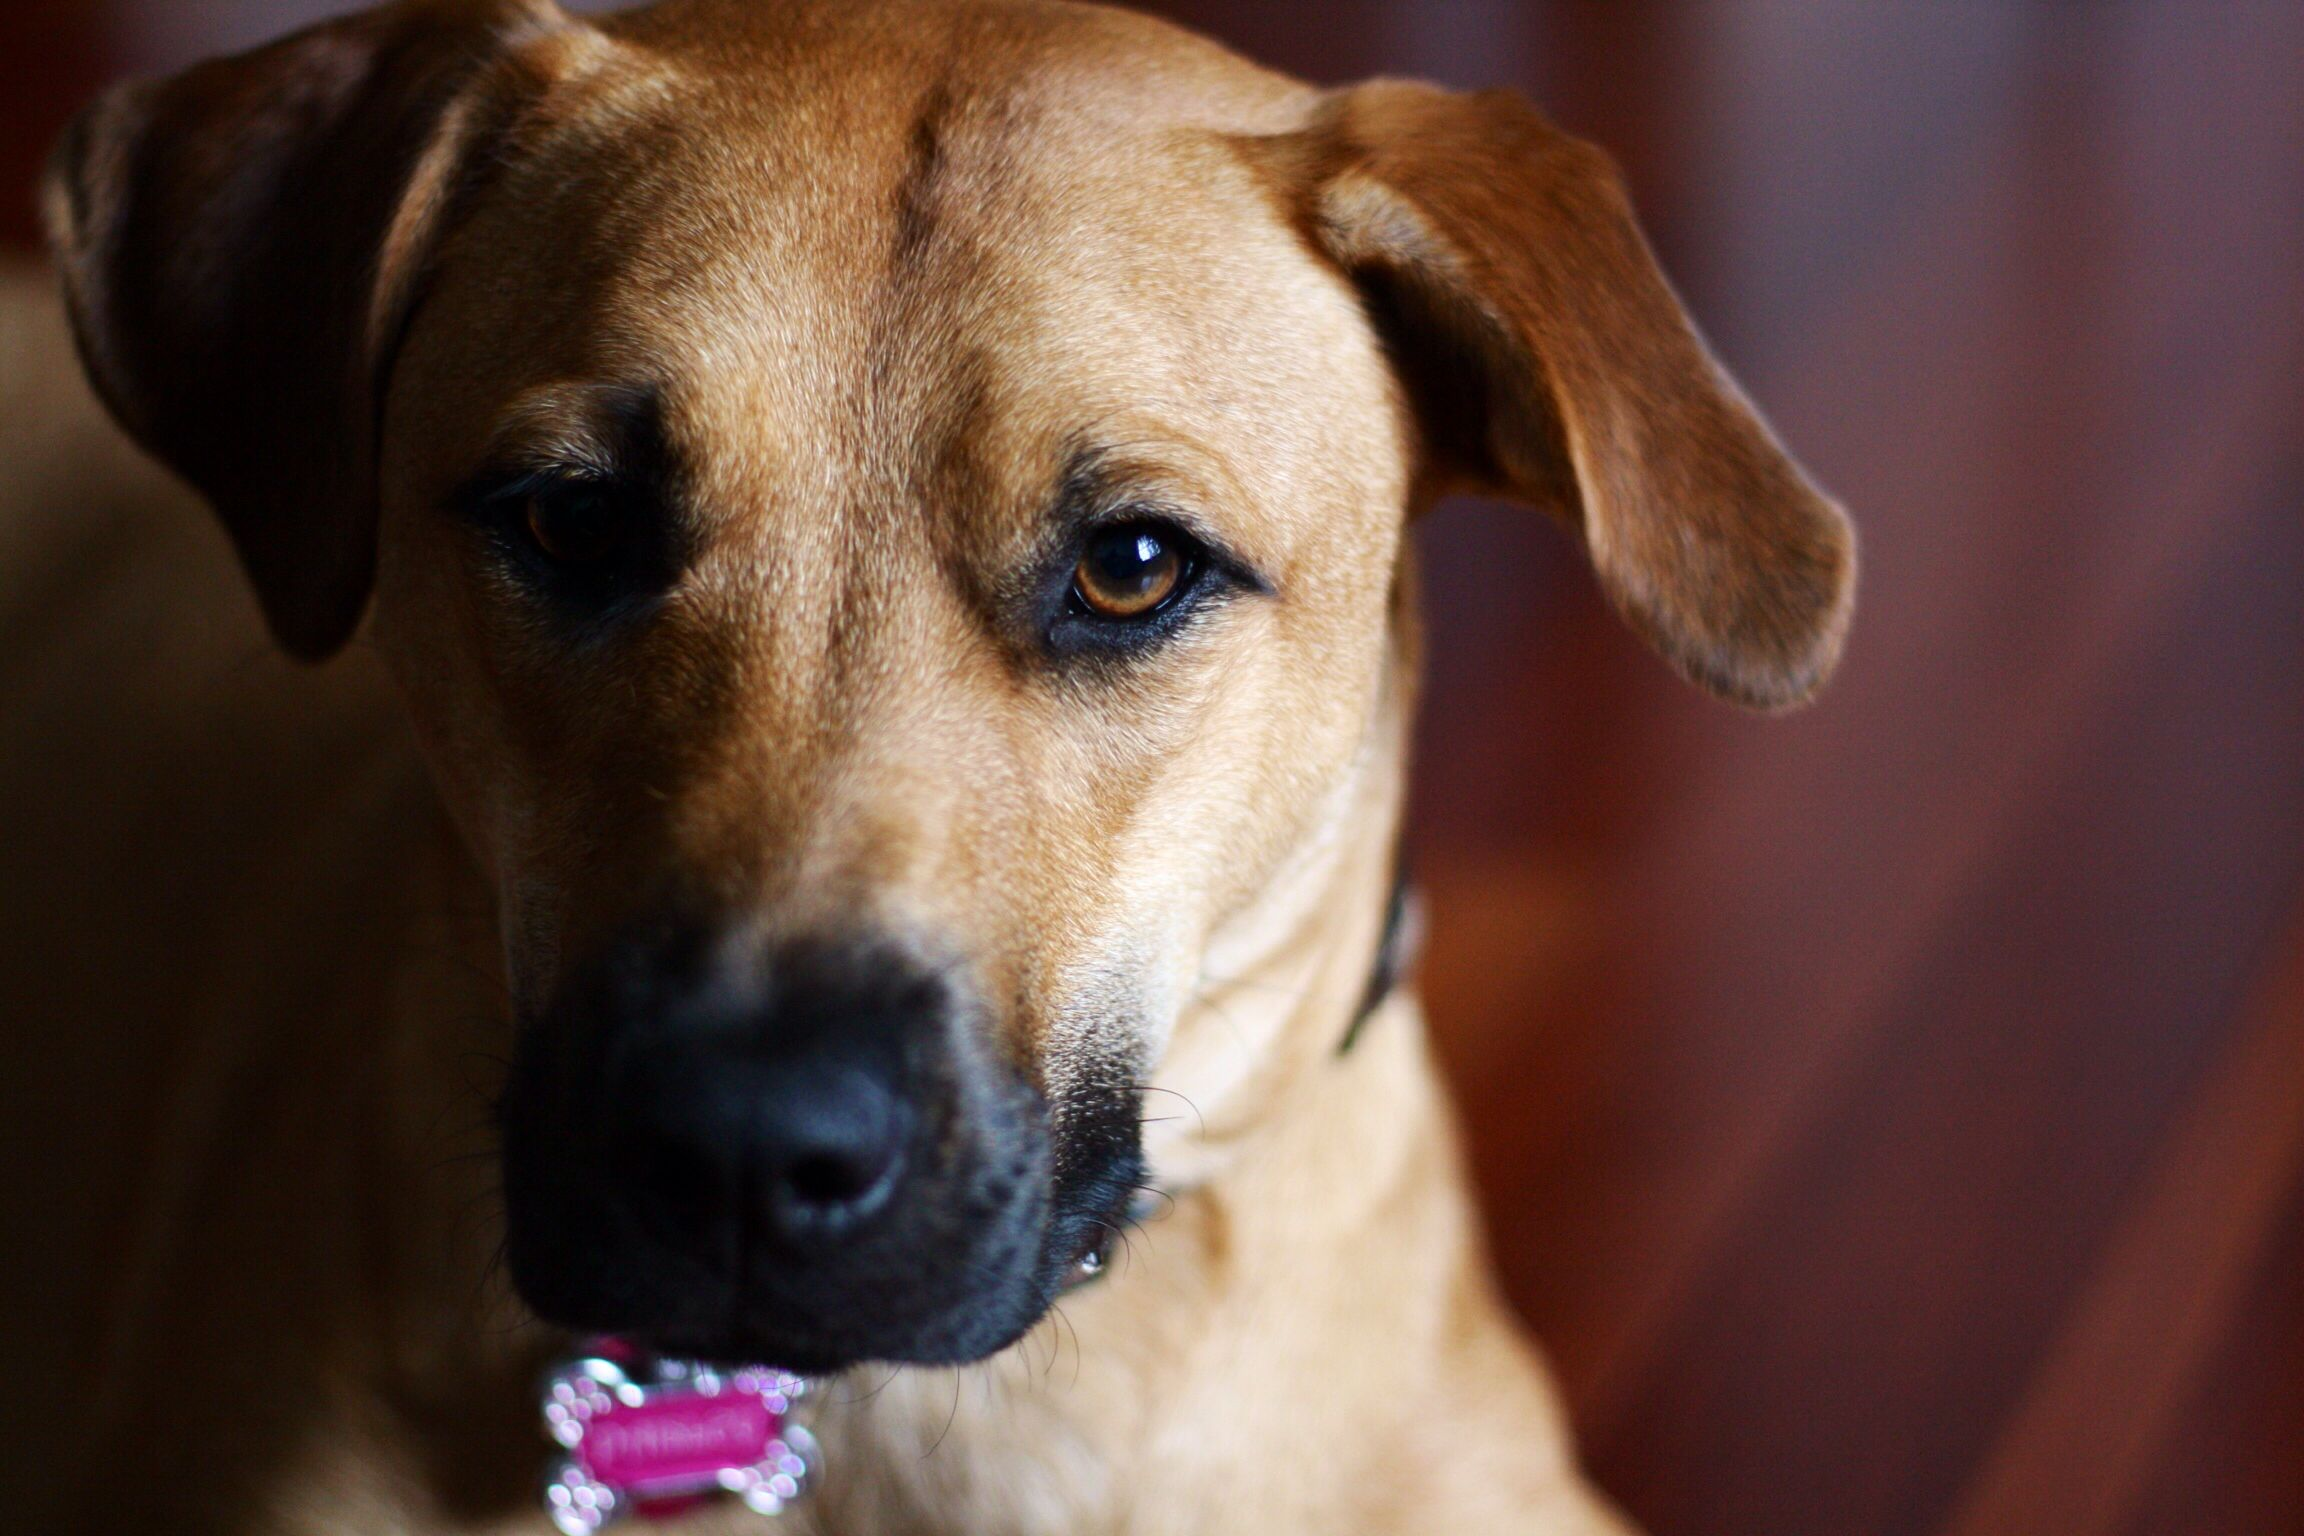 Must see Mouth Cur Black Adorable Dog - 65a04a6626b7d1a8f5bc963e0e39dc51  Trends_949617  .jpg